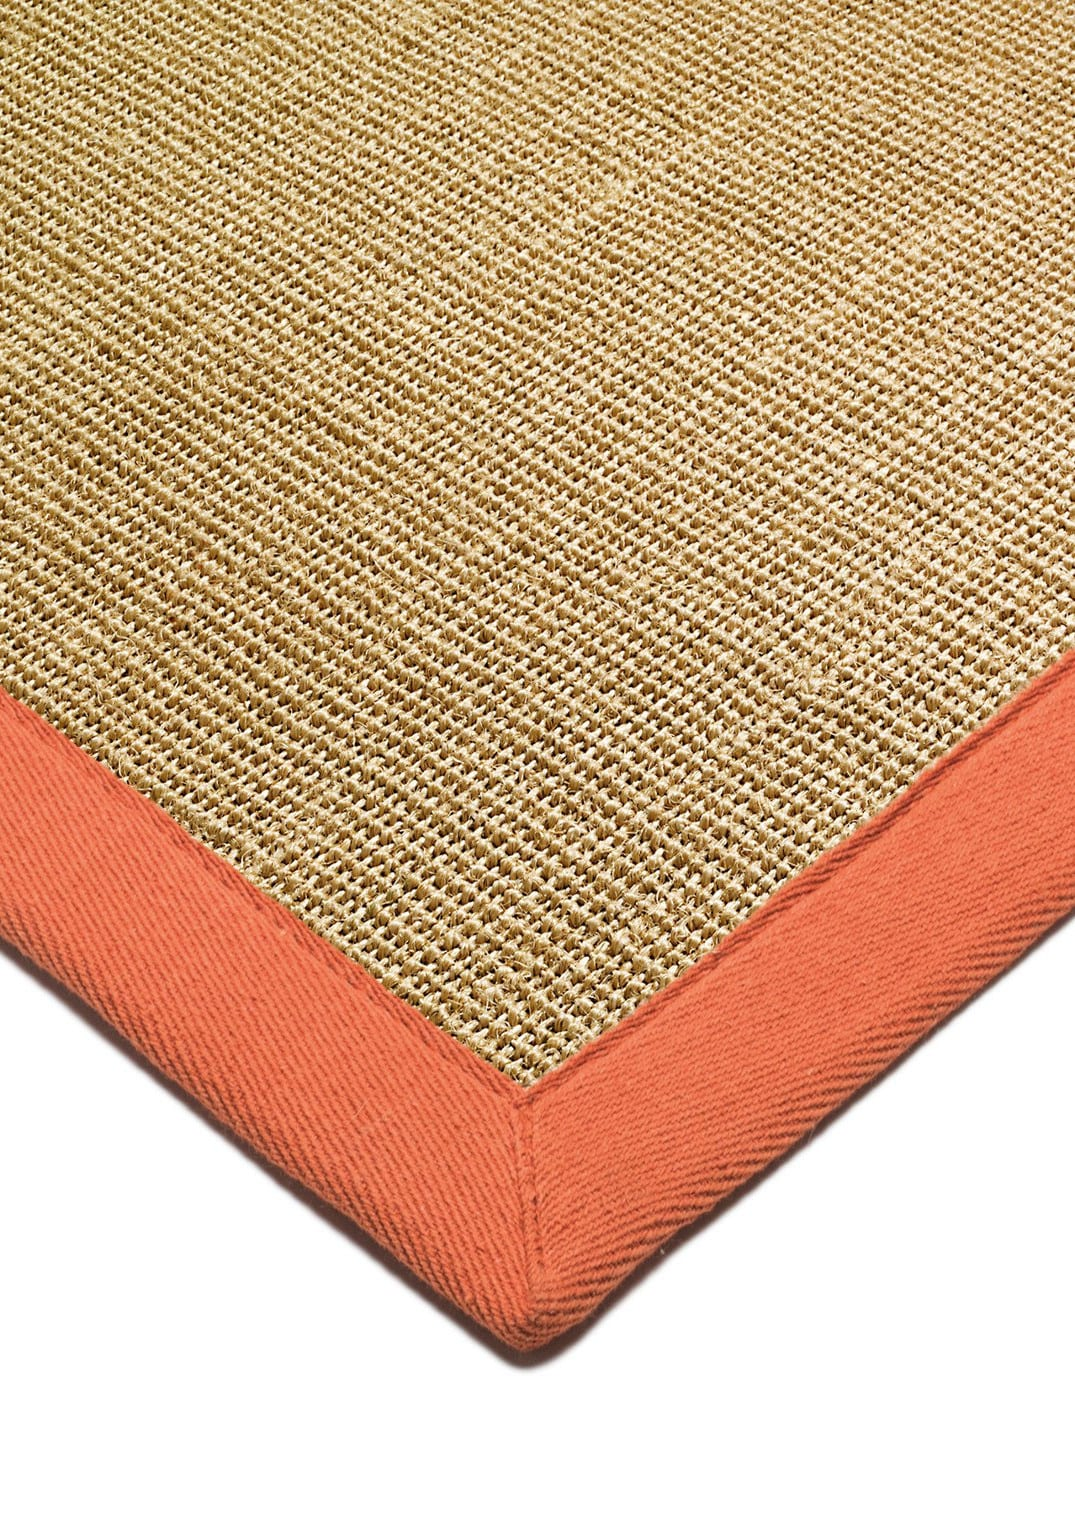 Sisal Rug By Asiatic Carpets Colour